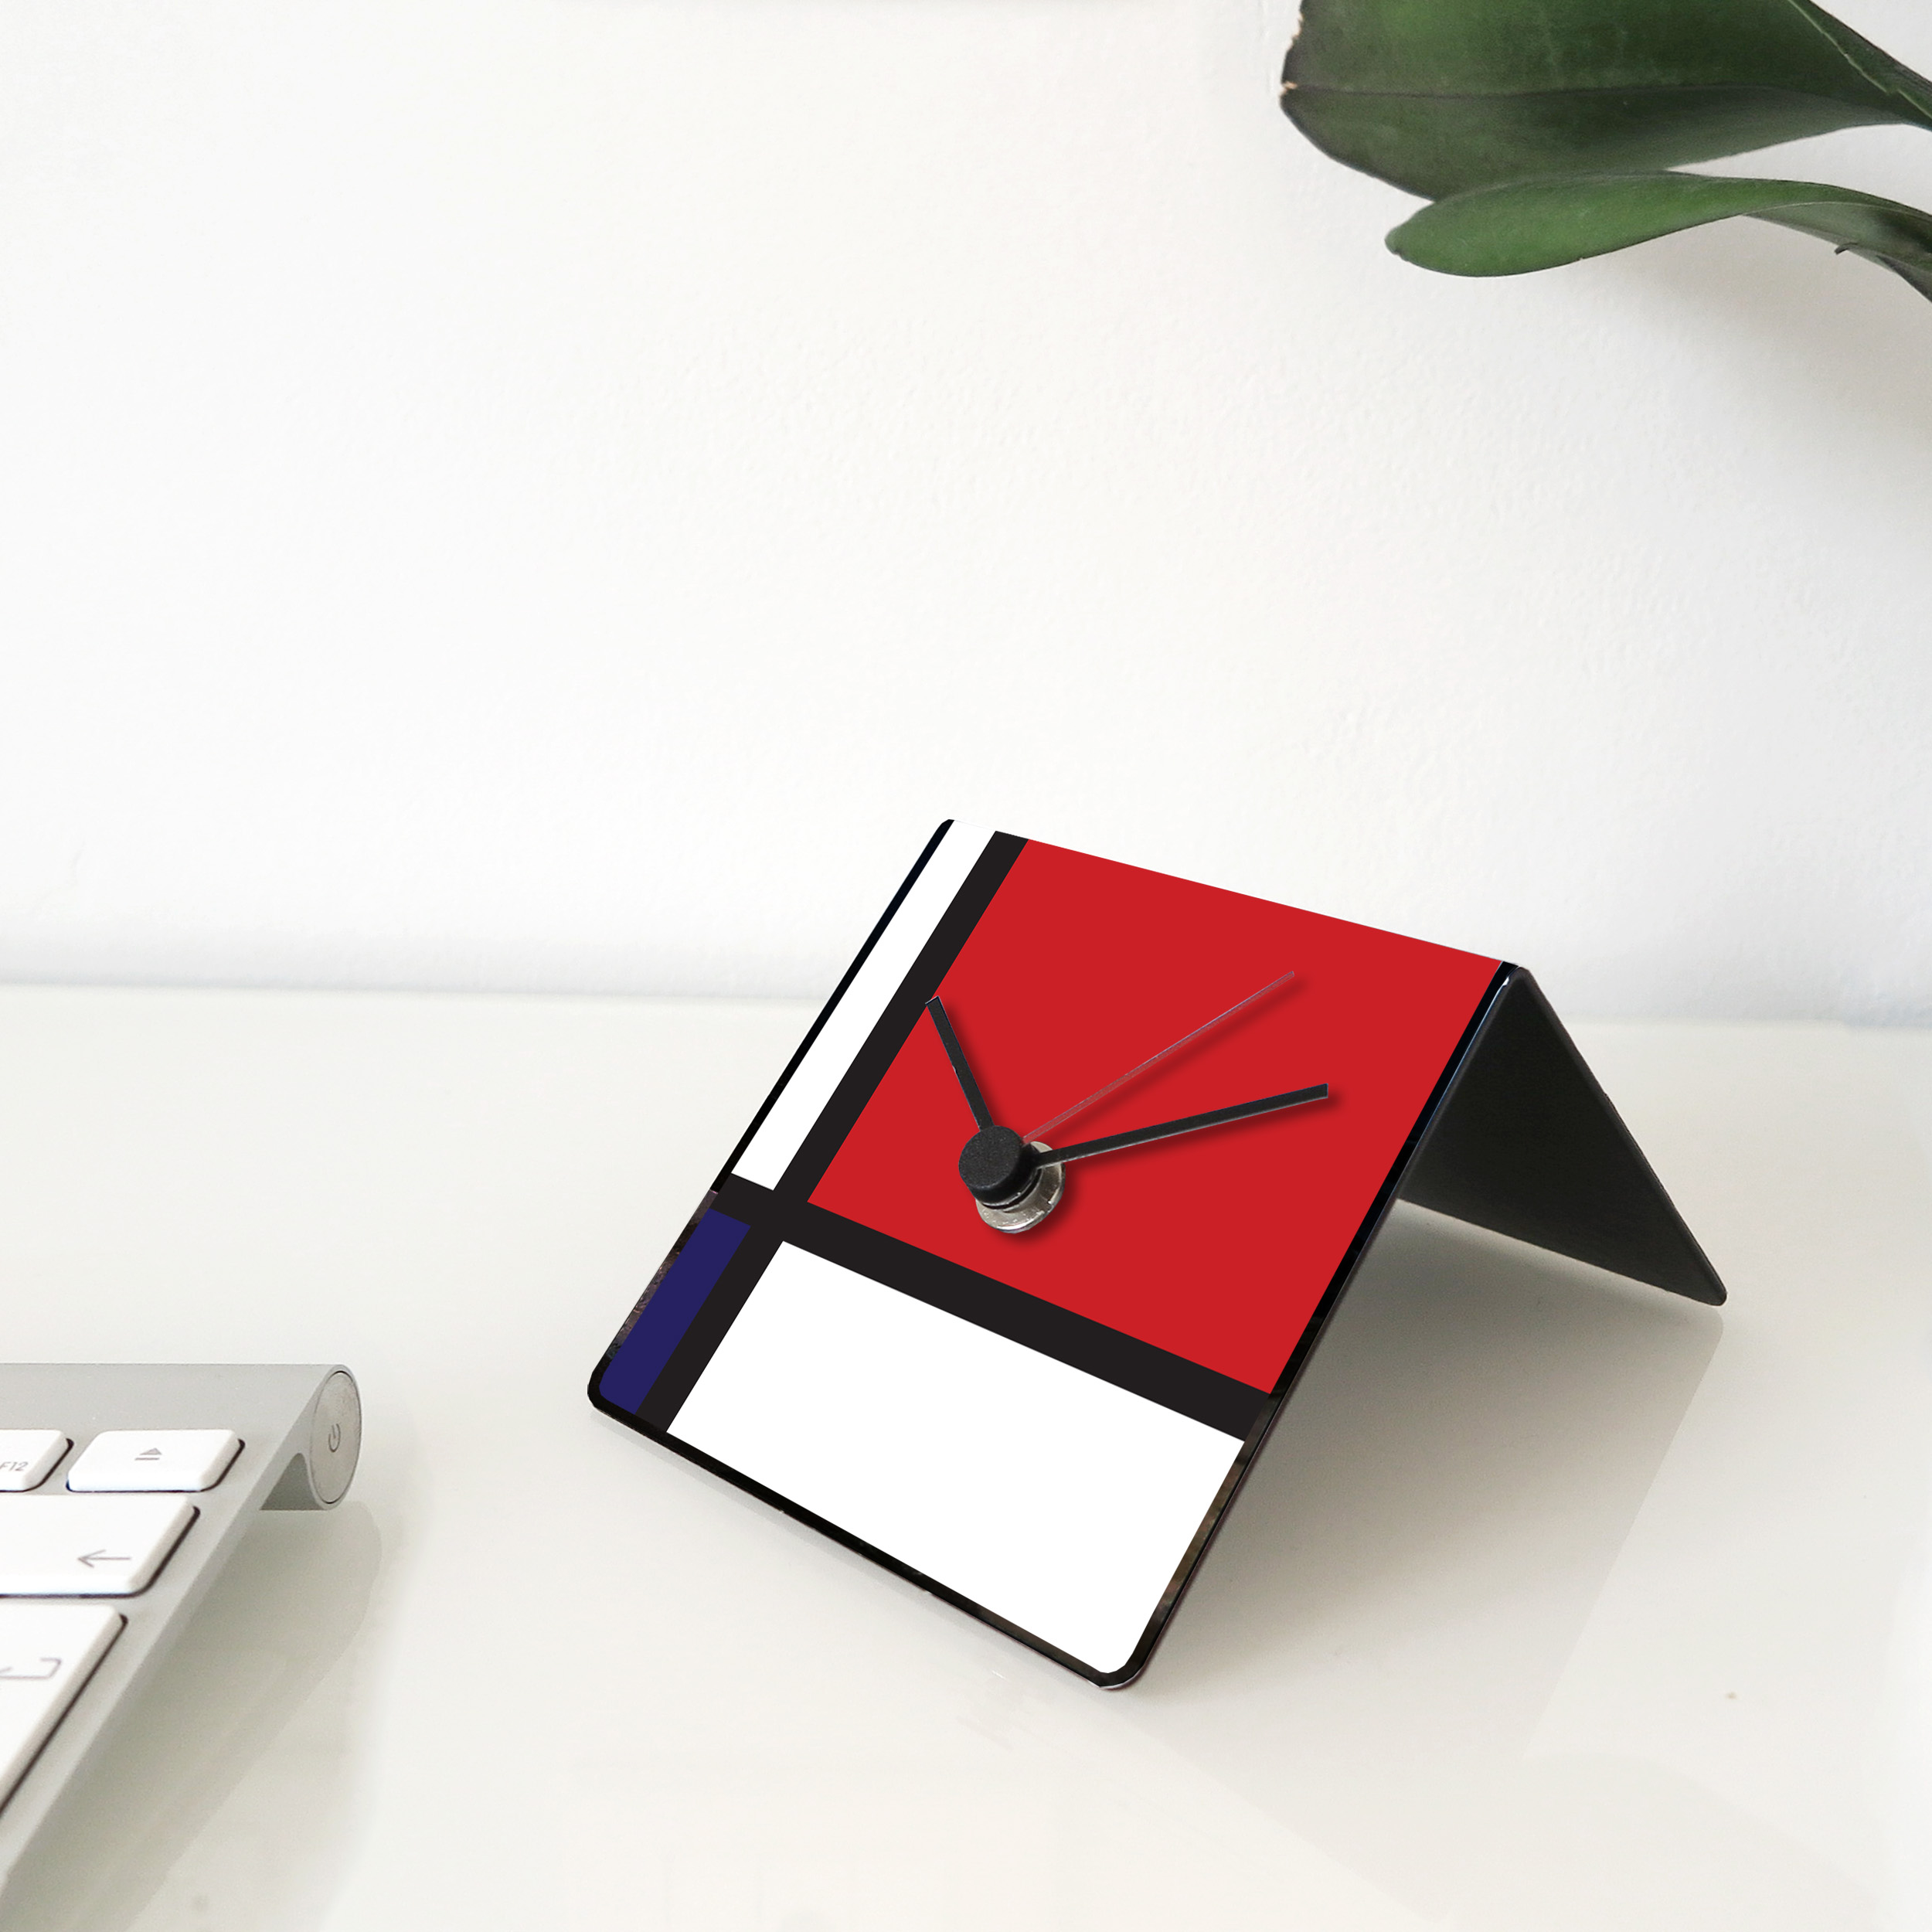 mondrian art clock design designobject